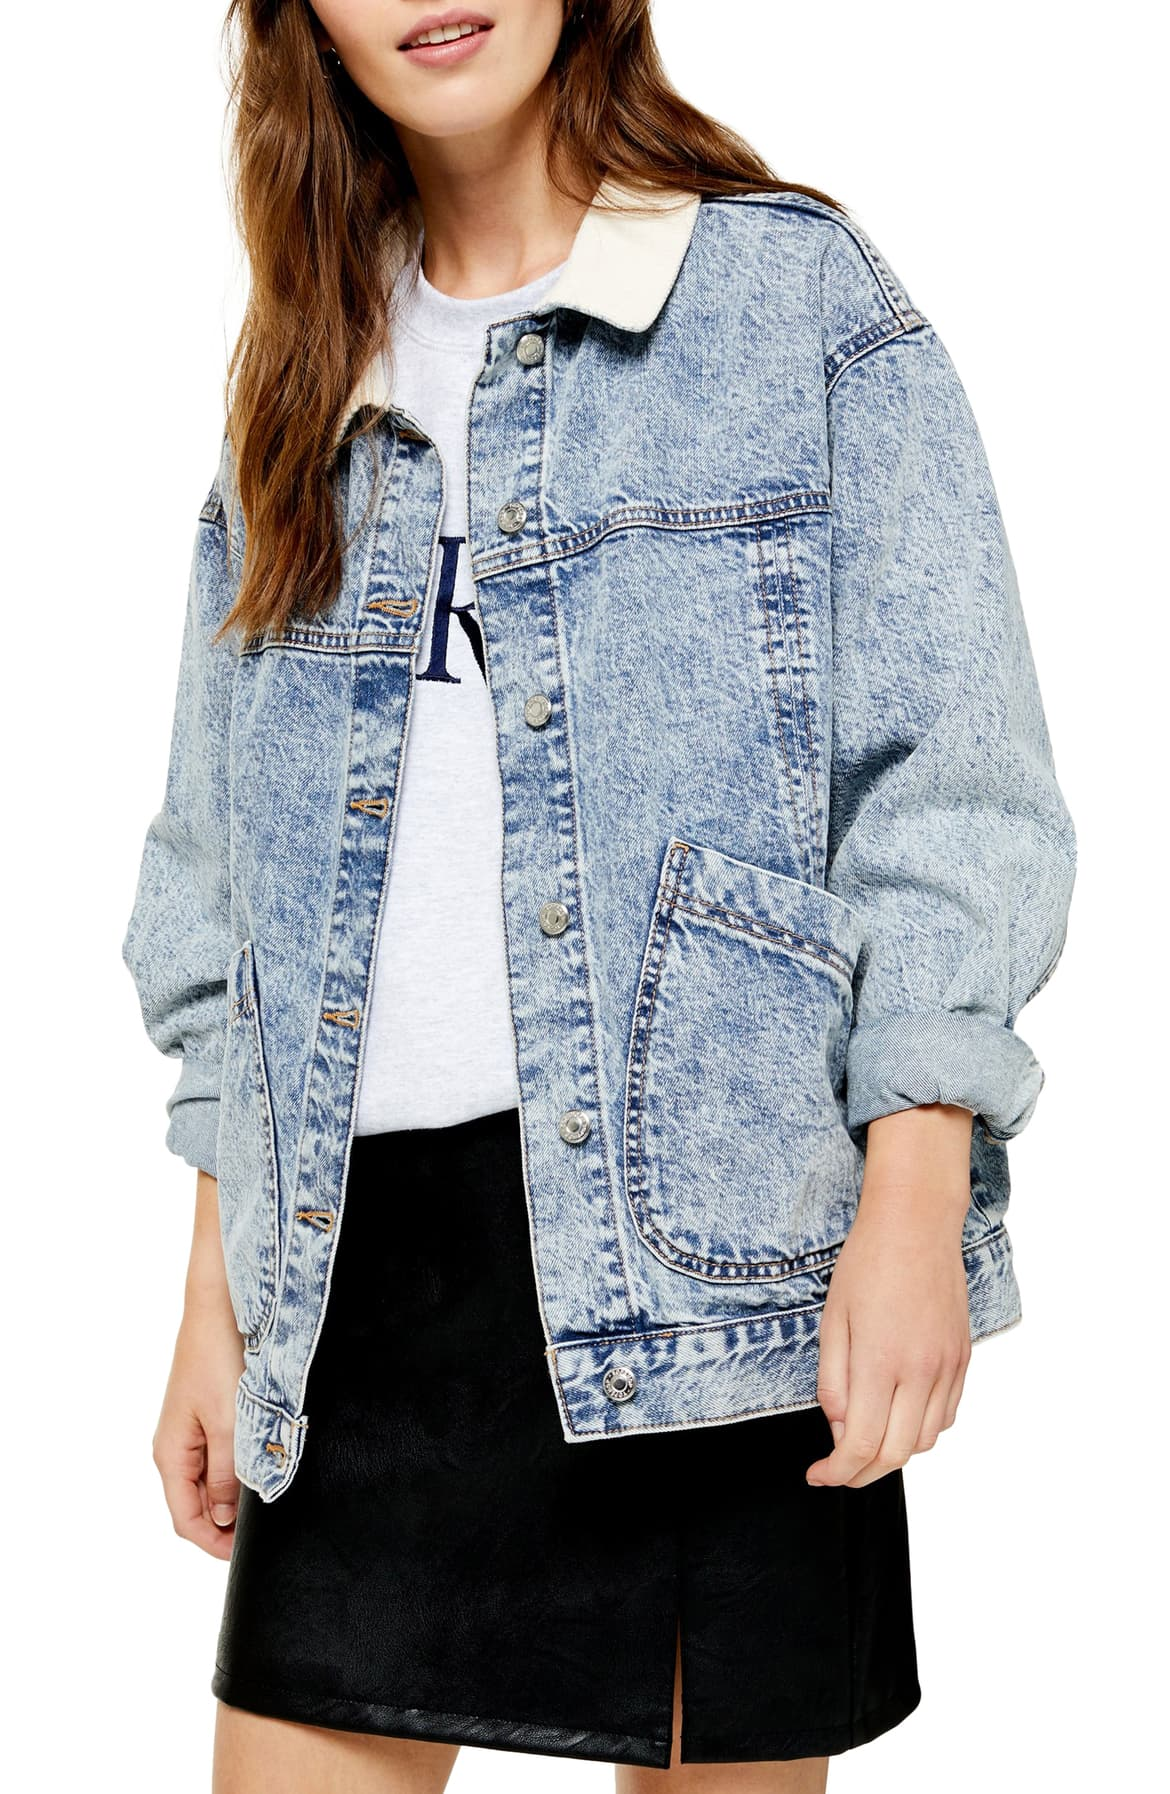 A cool acid-wash jacket is updated with a contrasting cord collar and handy patch pockets. I'd wear it. $80 (Image: Nordstrom)